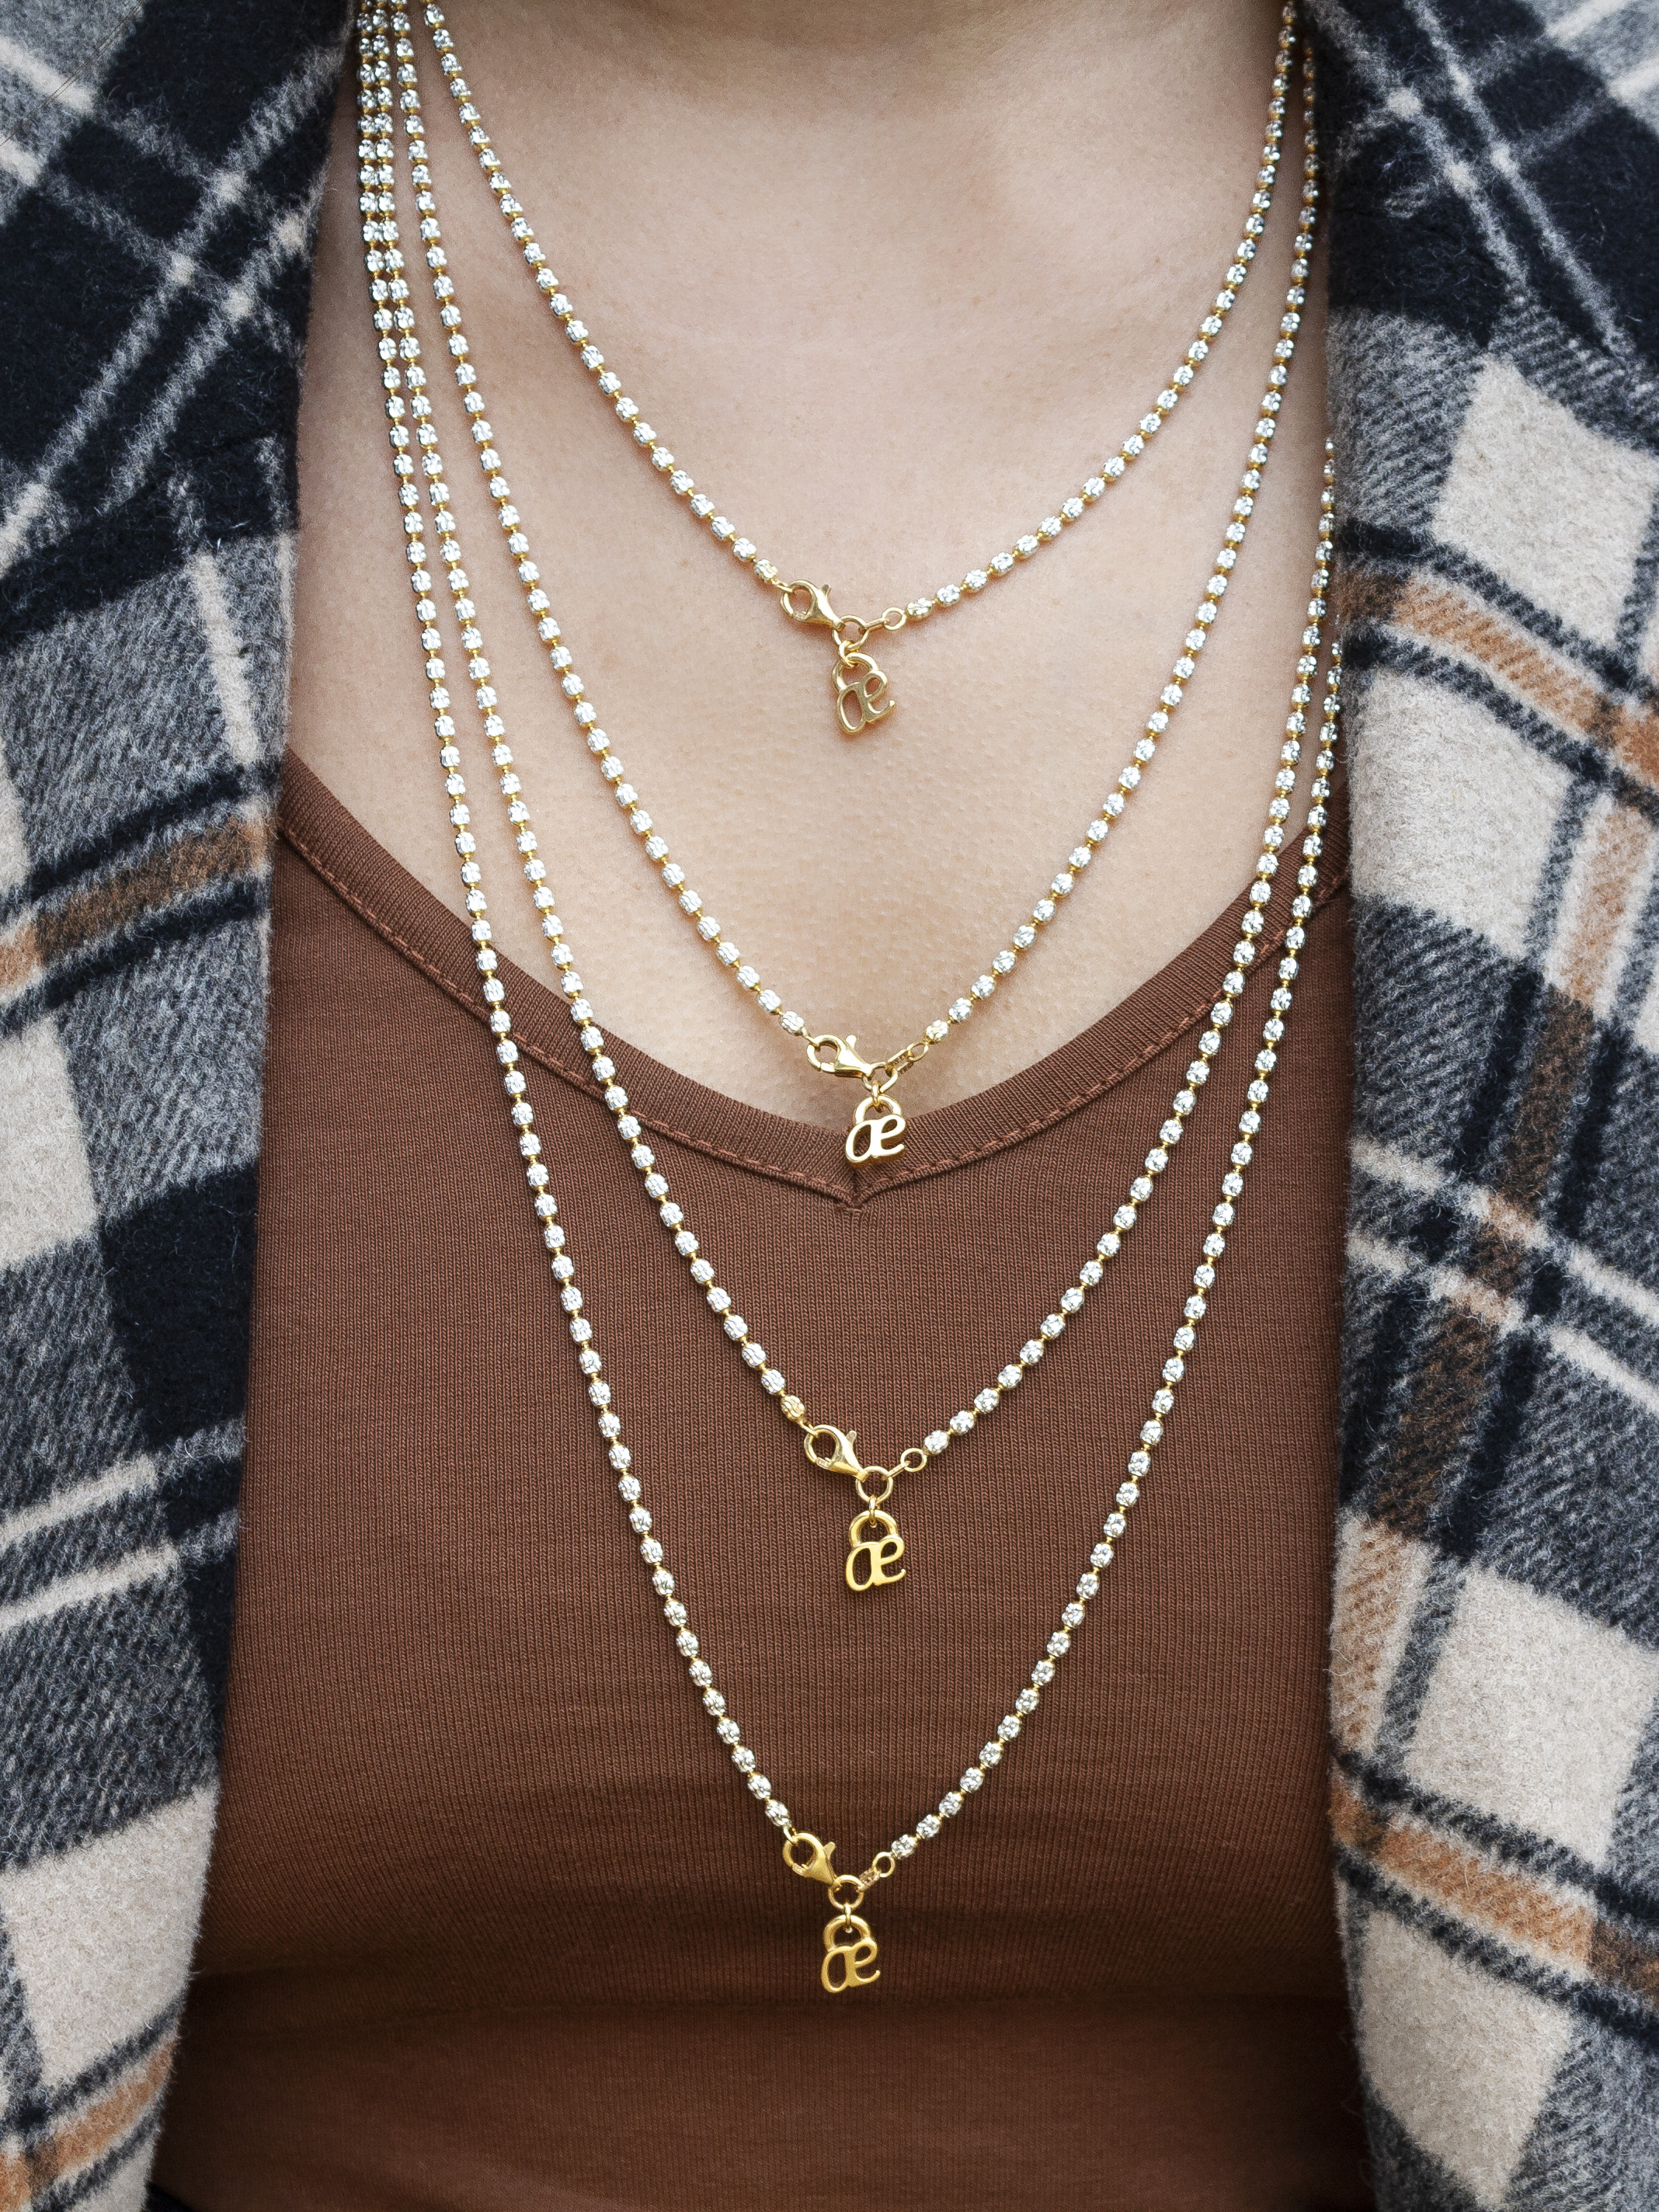 Sparkle Chain In Most Popular Sparkling Pattern Necklaces (View 7 of 25)